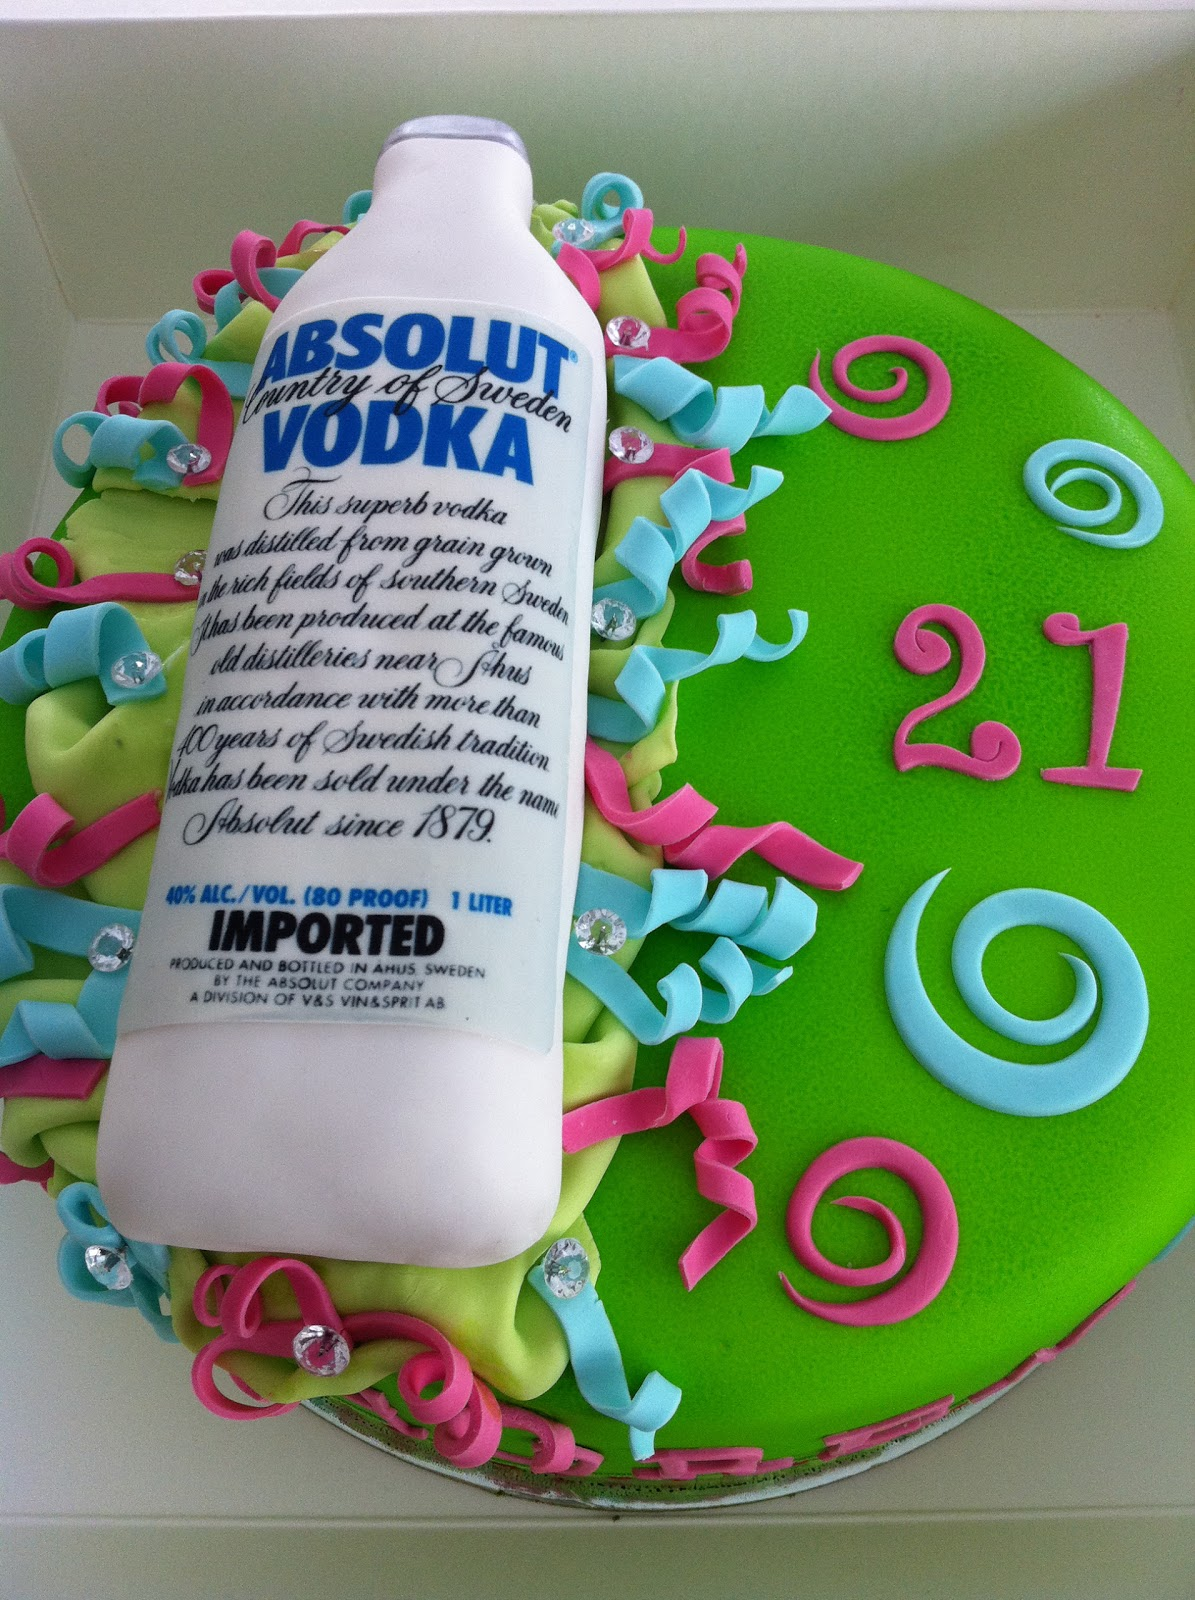 Cake Decorating Qualifications : Mandylicious Cakes: Absolut delicious